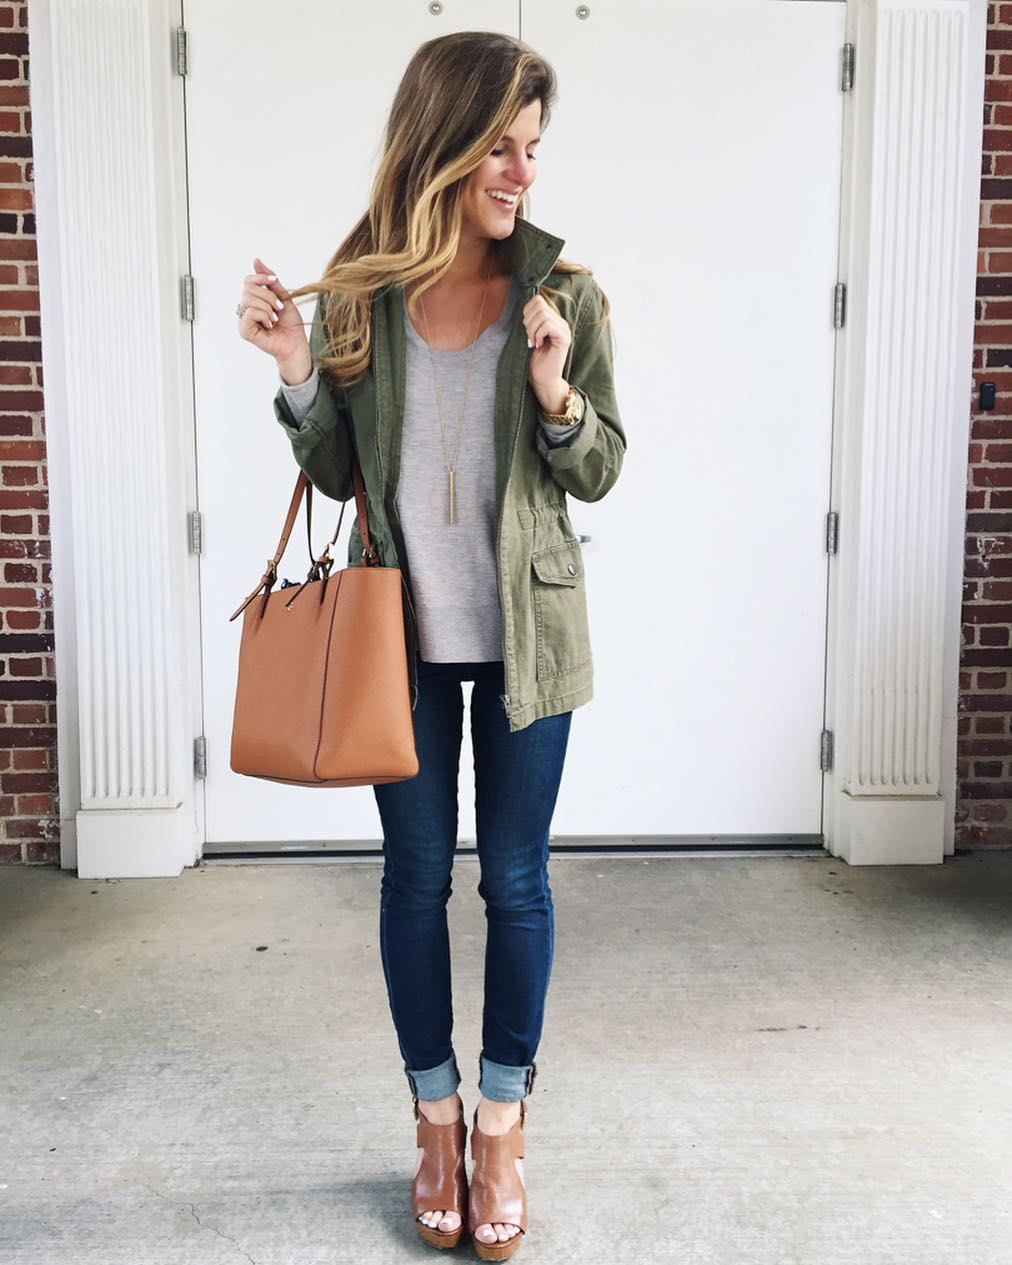 0b4fcff9cb3  brightonkeller  OOTD wearing grey sweater utility jacket blue jeans and  cognac wedges